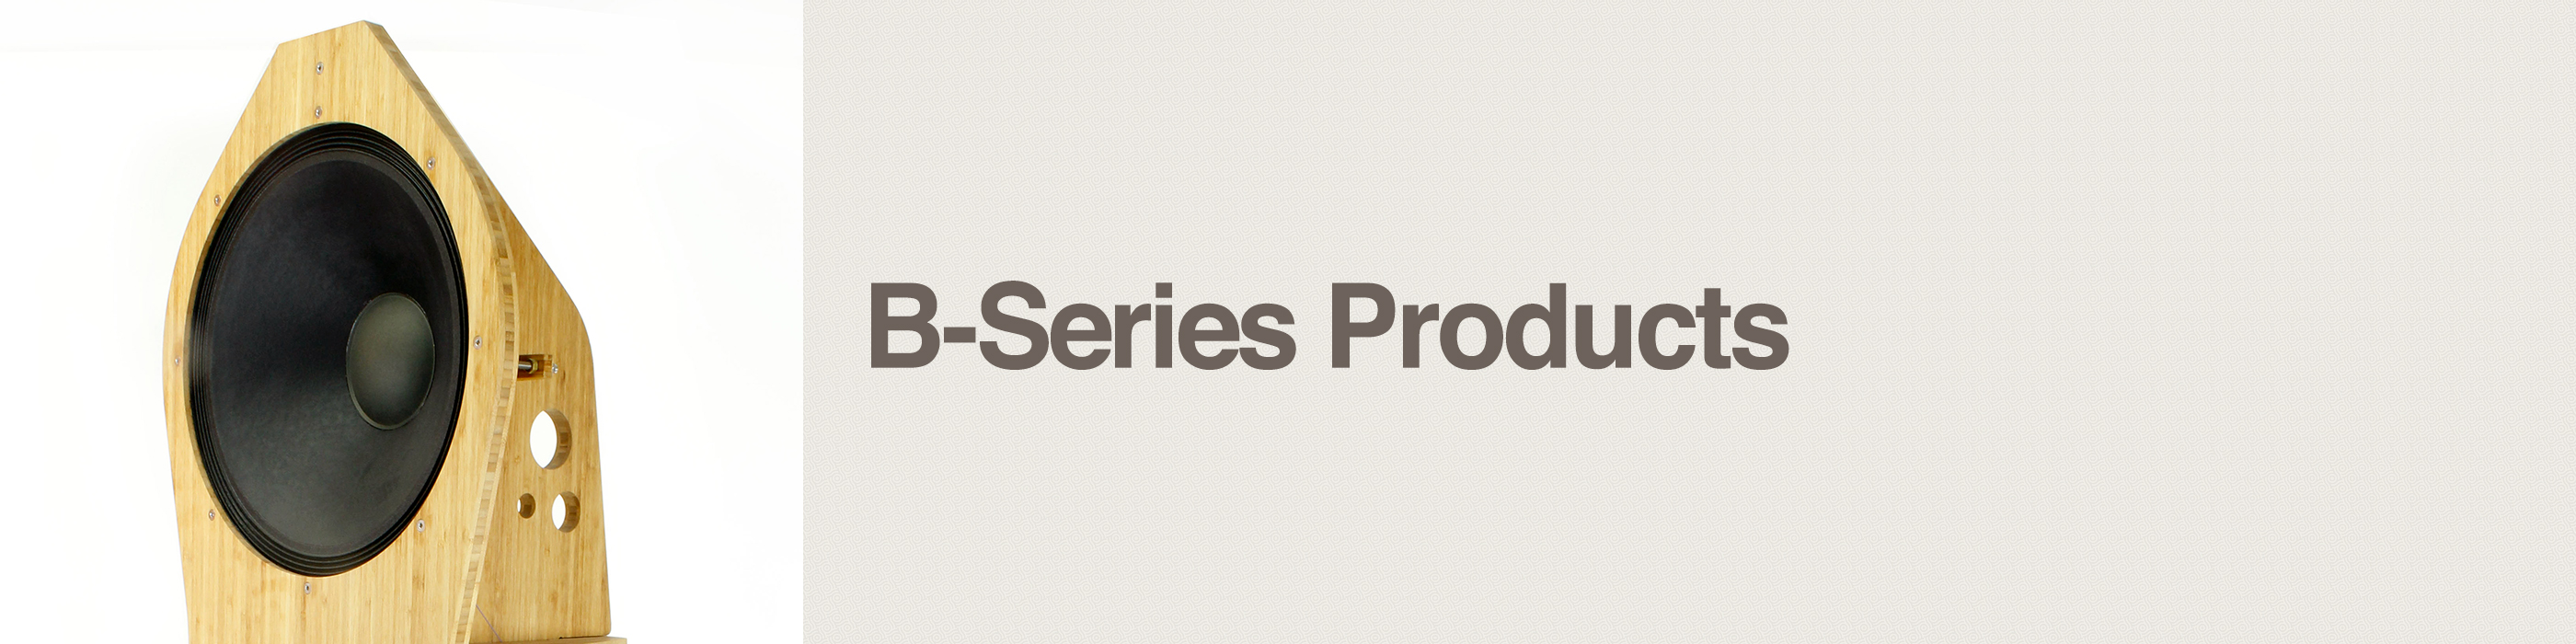 b-series products header